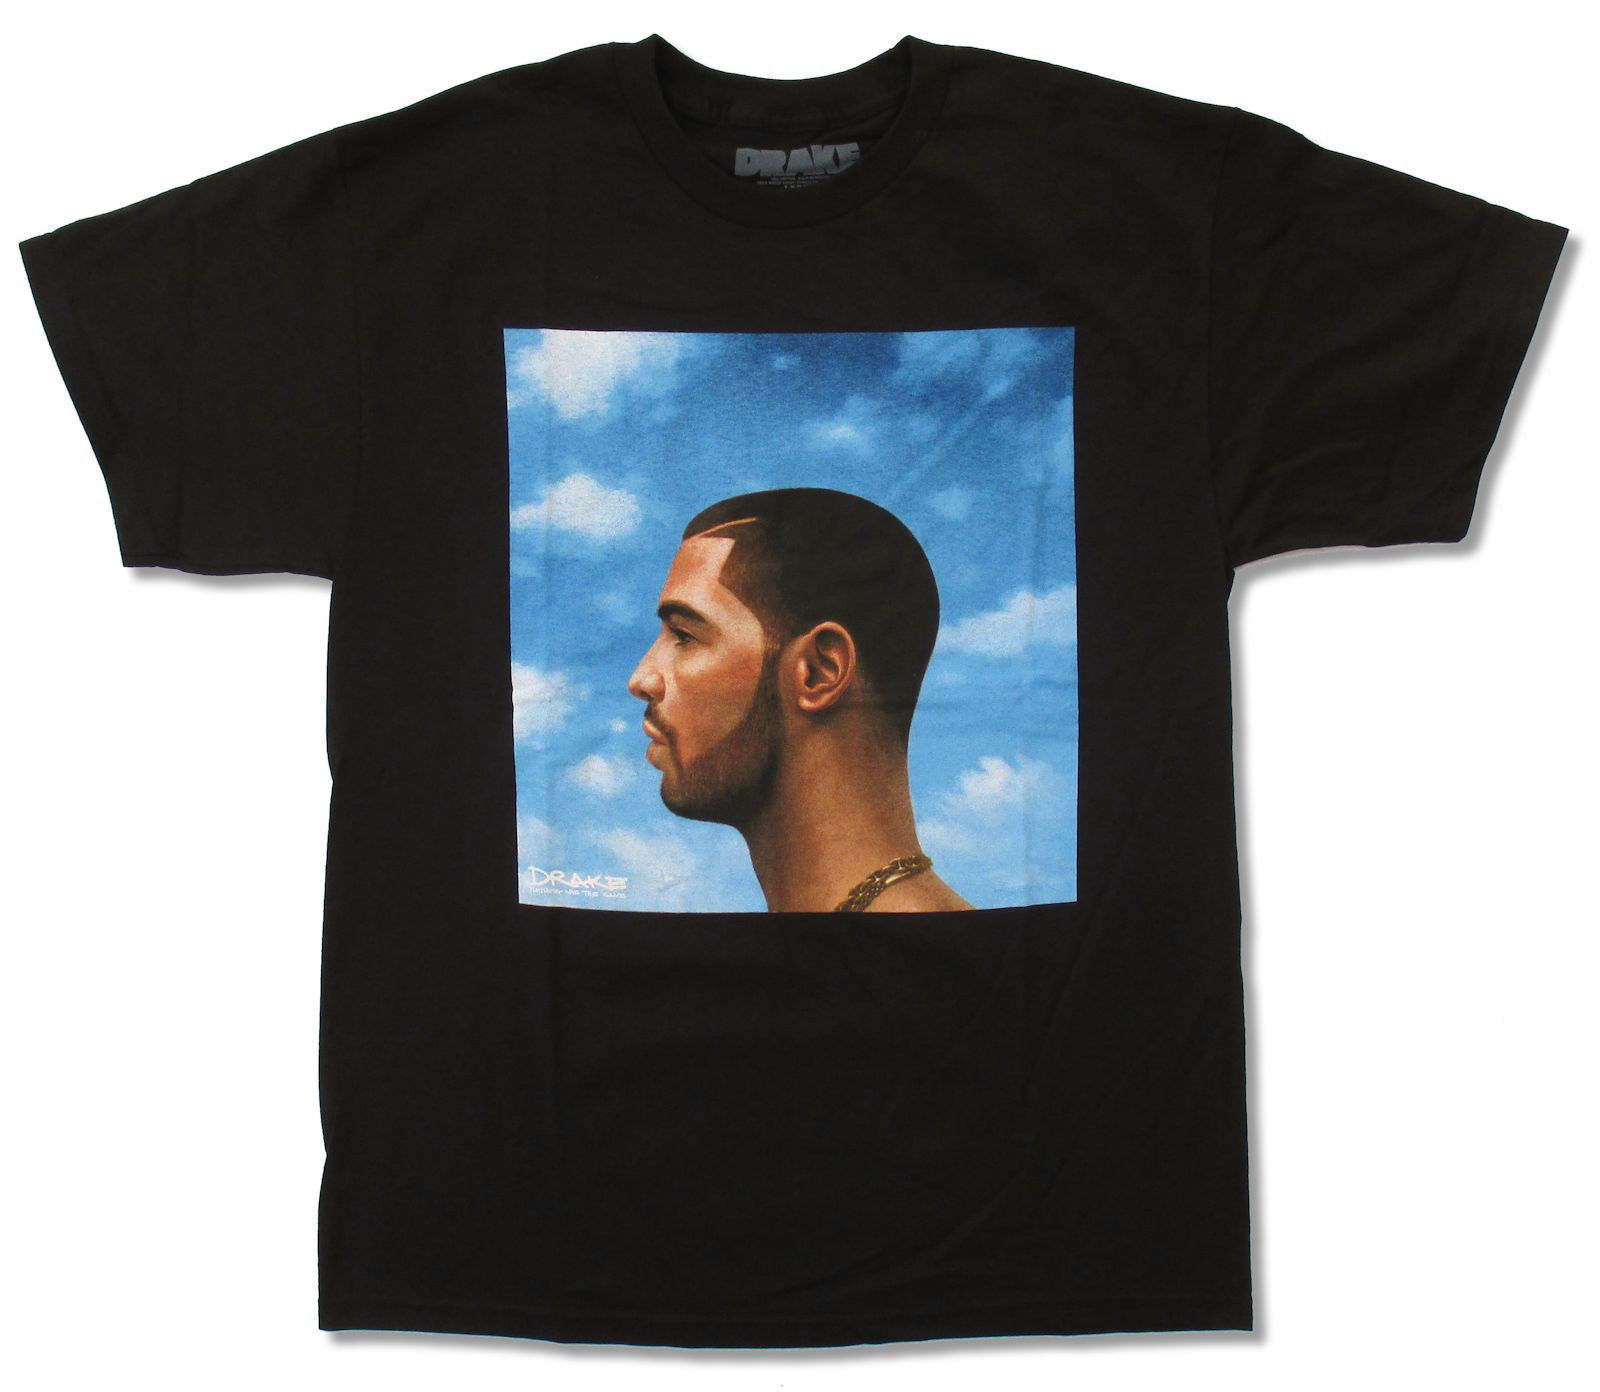 DRAKE OLDER COVER BLACK T-SHIRT NEW OFFICIAL RAP SINGER NOTHING WAS THE SAME Fashion Summer Paried T Shirts Top Tee